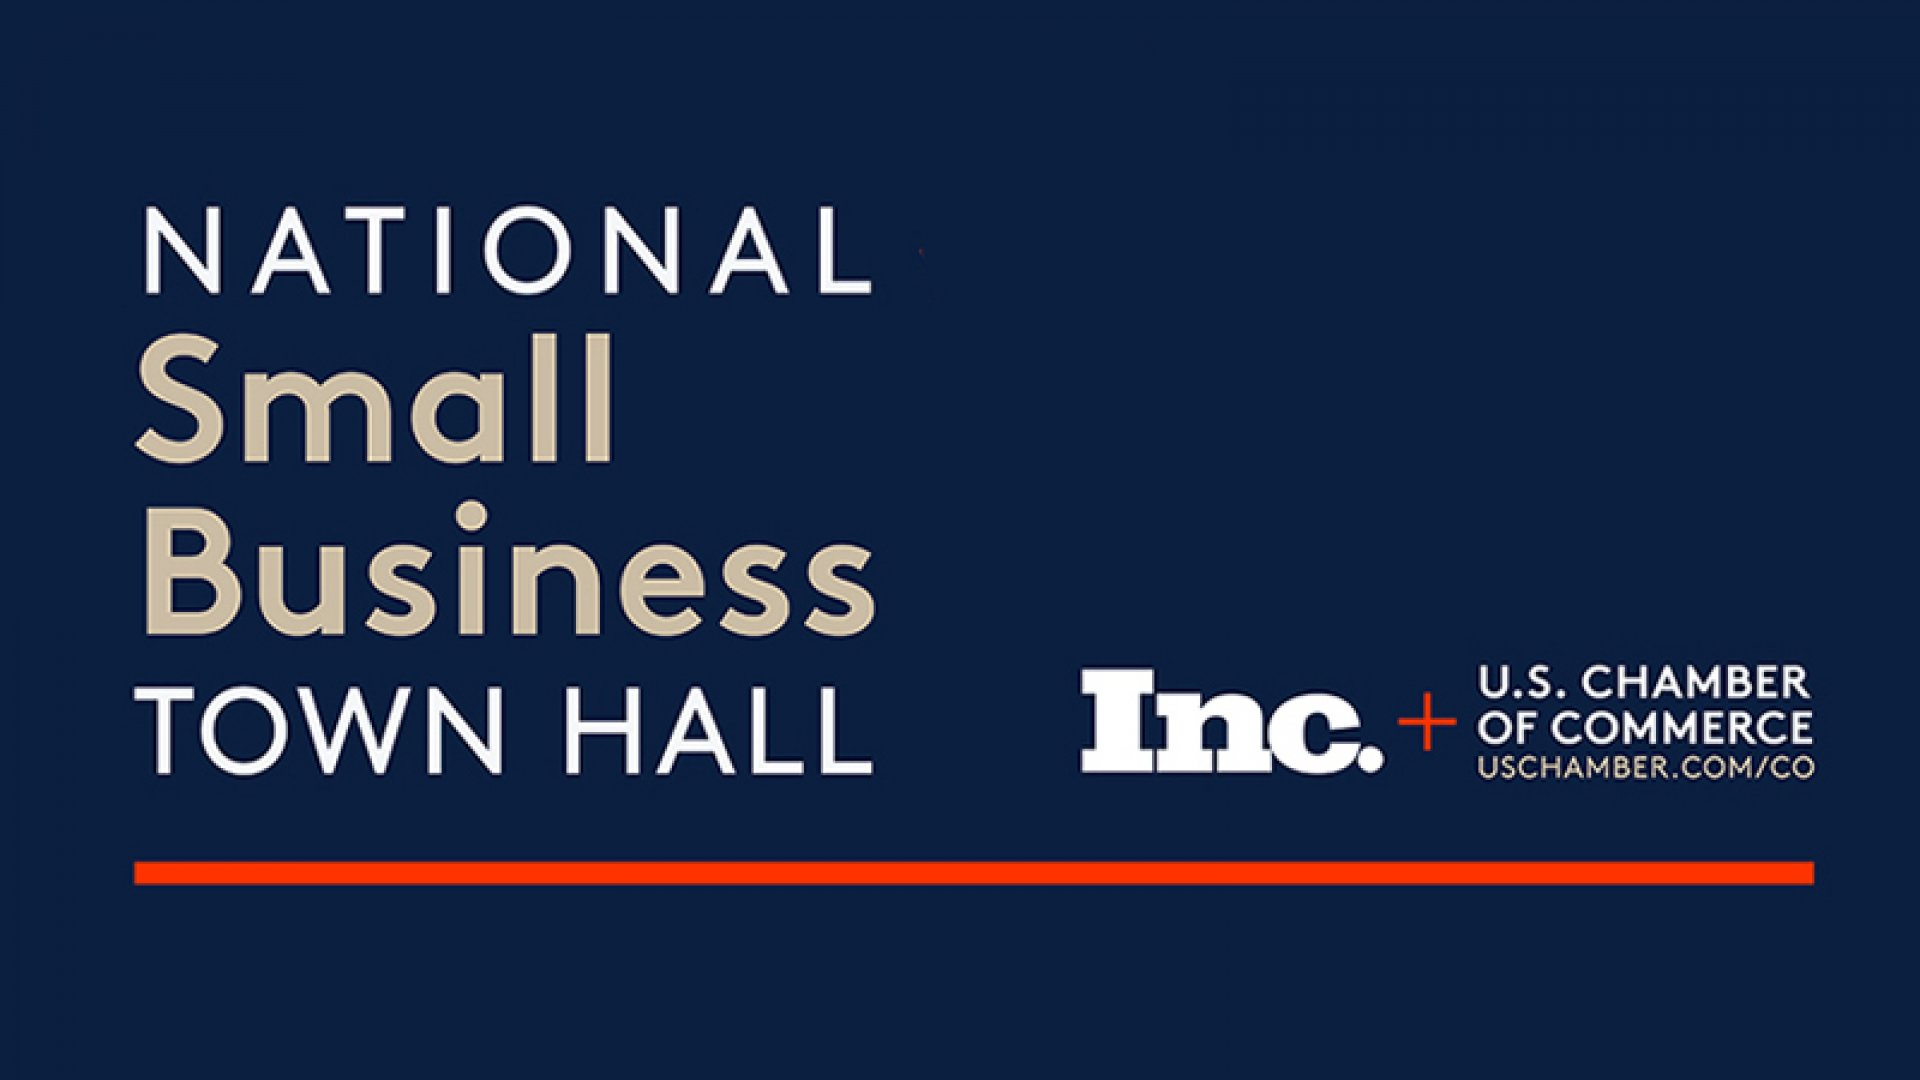 Inc. & U.S. Chamber of Commerce Hosting National Small Business Town Halls